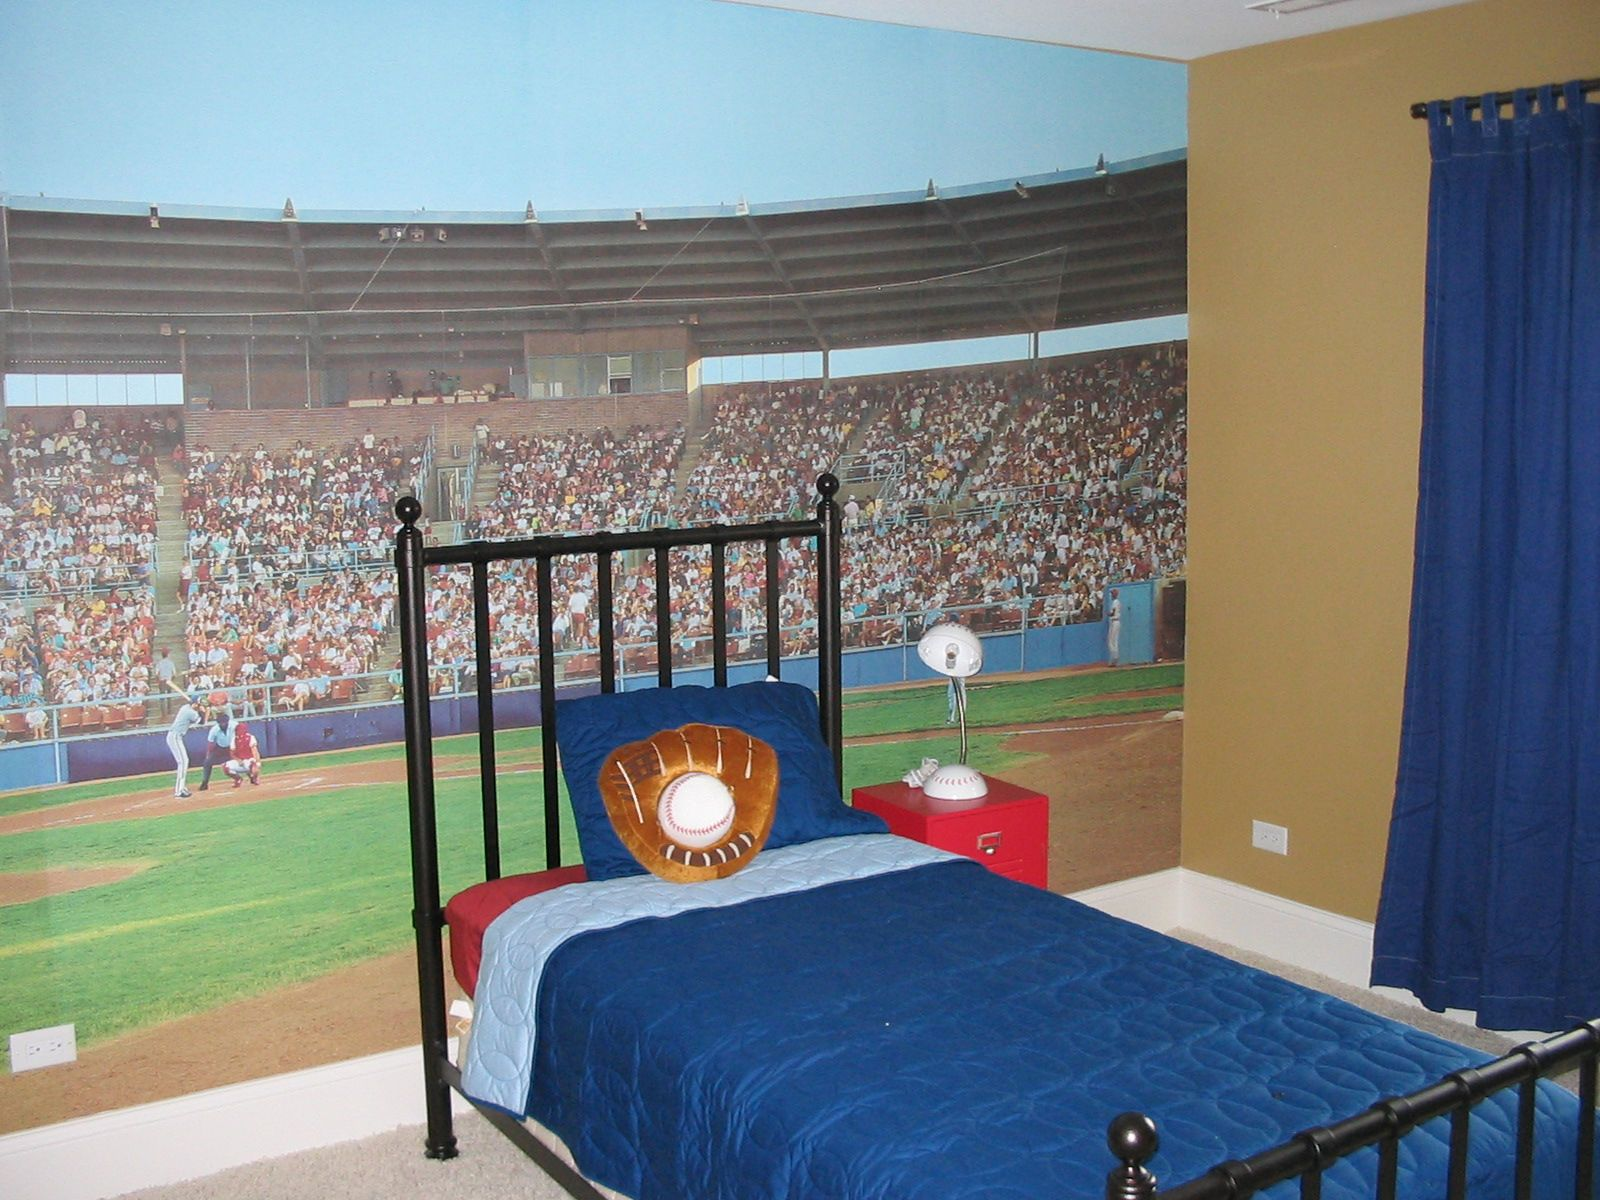 Toddler Boys Baseball Bedroom Ideas boys baseball bedroom | design ideas | theme bedrooms | casen